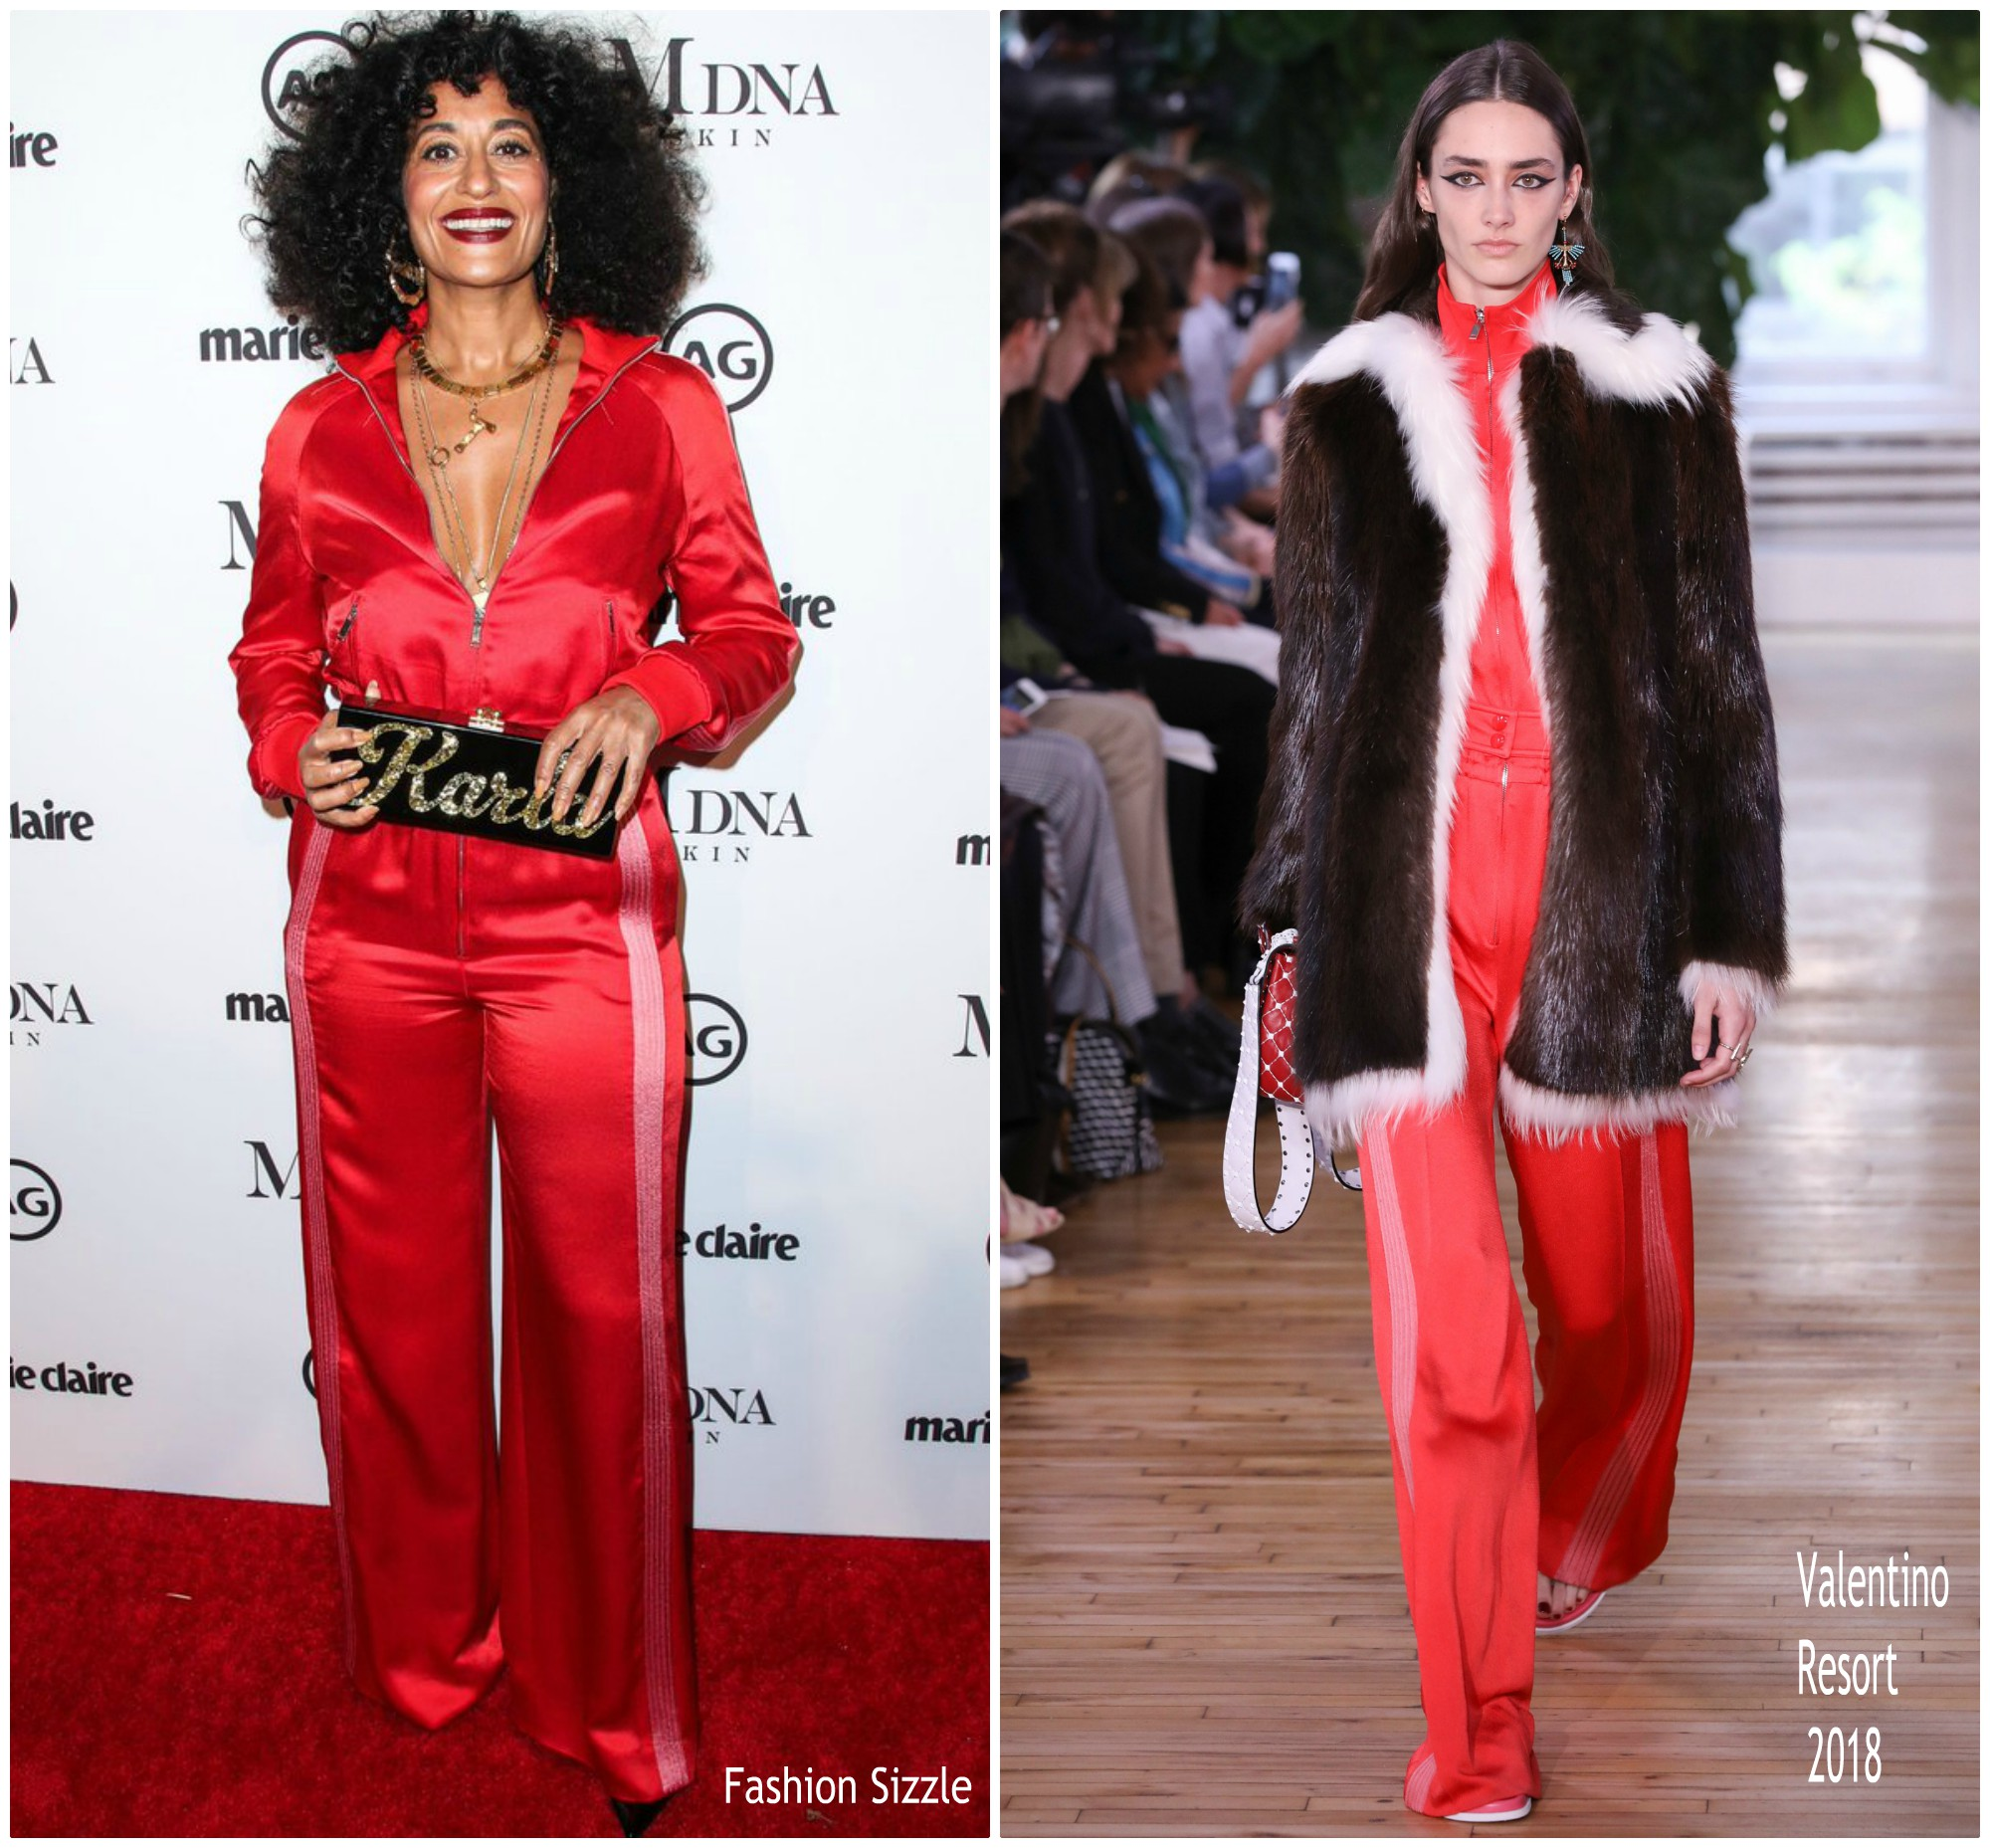 tracee-ellis-ross-in-valentino-marie-claire-3rd-annual-image-makers-awards